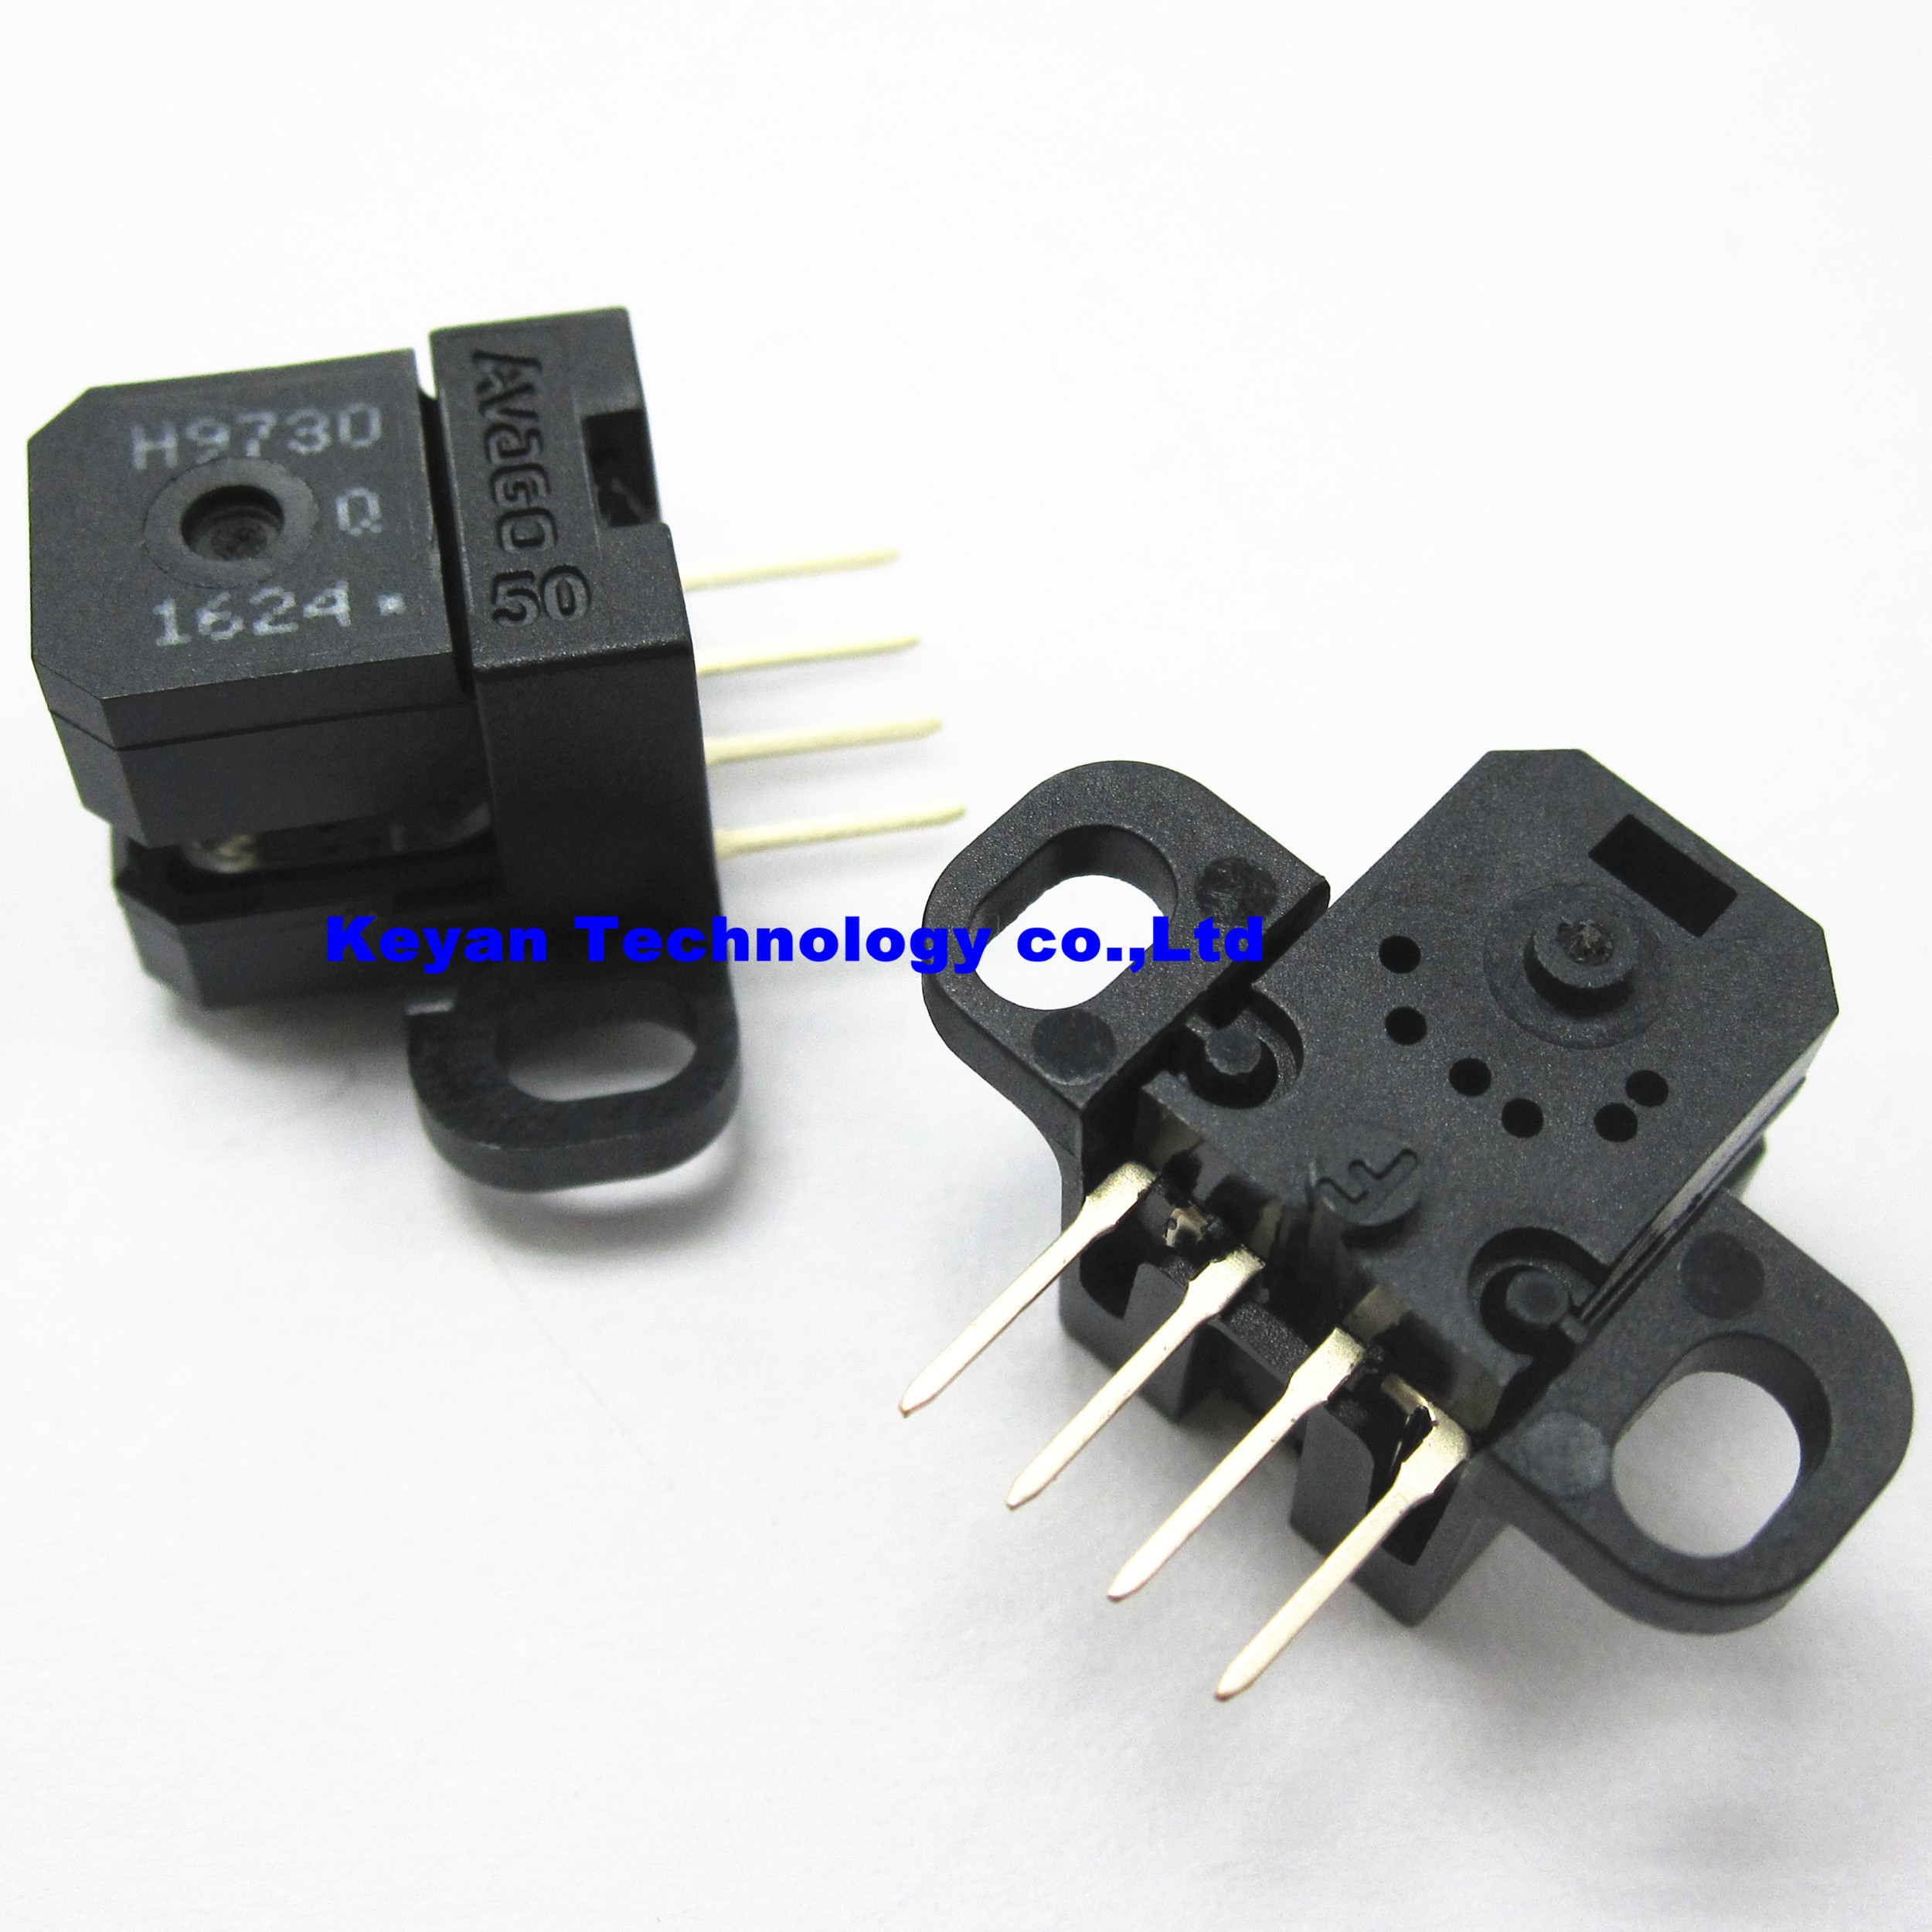 HEDS-9730#Q50 , H9730-Q50 H9730 HEDS-9730 DIPER4 Small Optical Encoder Modules Digital Output AVAGO - Keyan Technology Co.,Ltd store